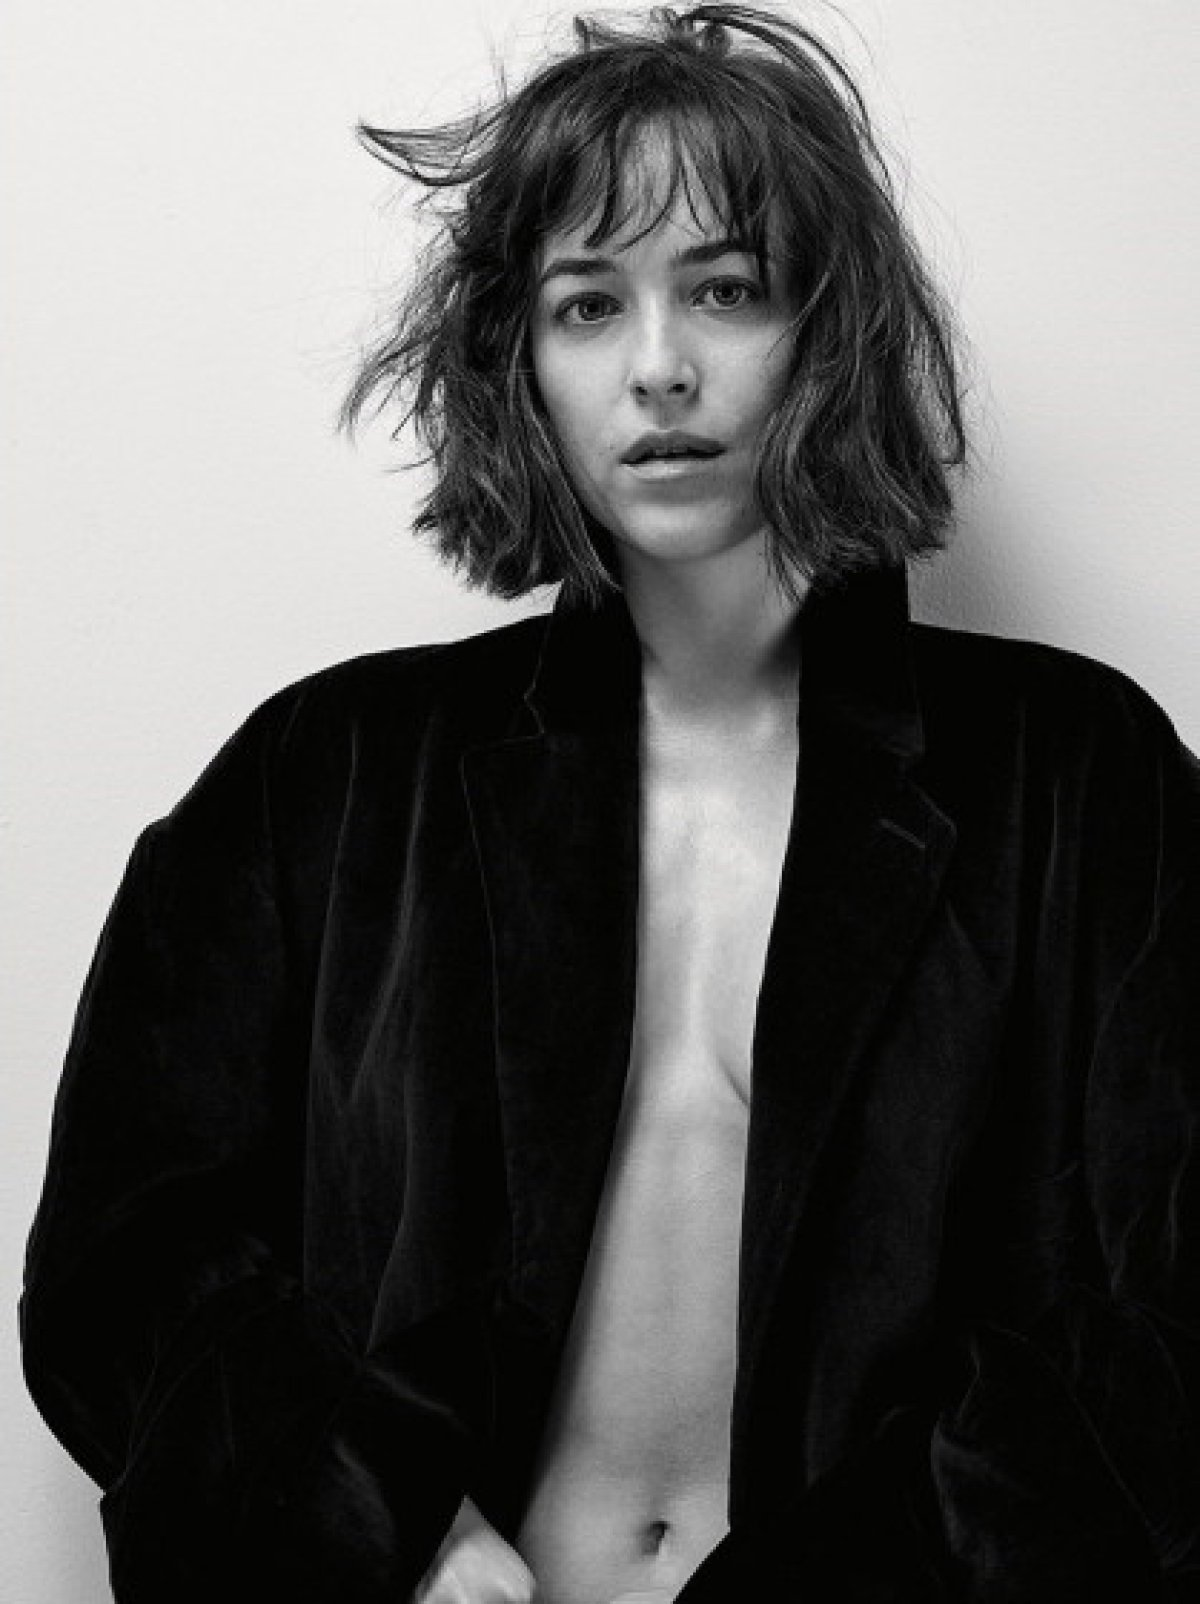 Dakota Johnson Se Desnuda Para La Revista Another Fotogalería